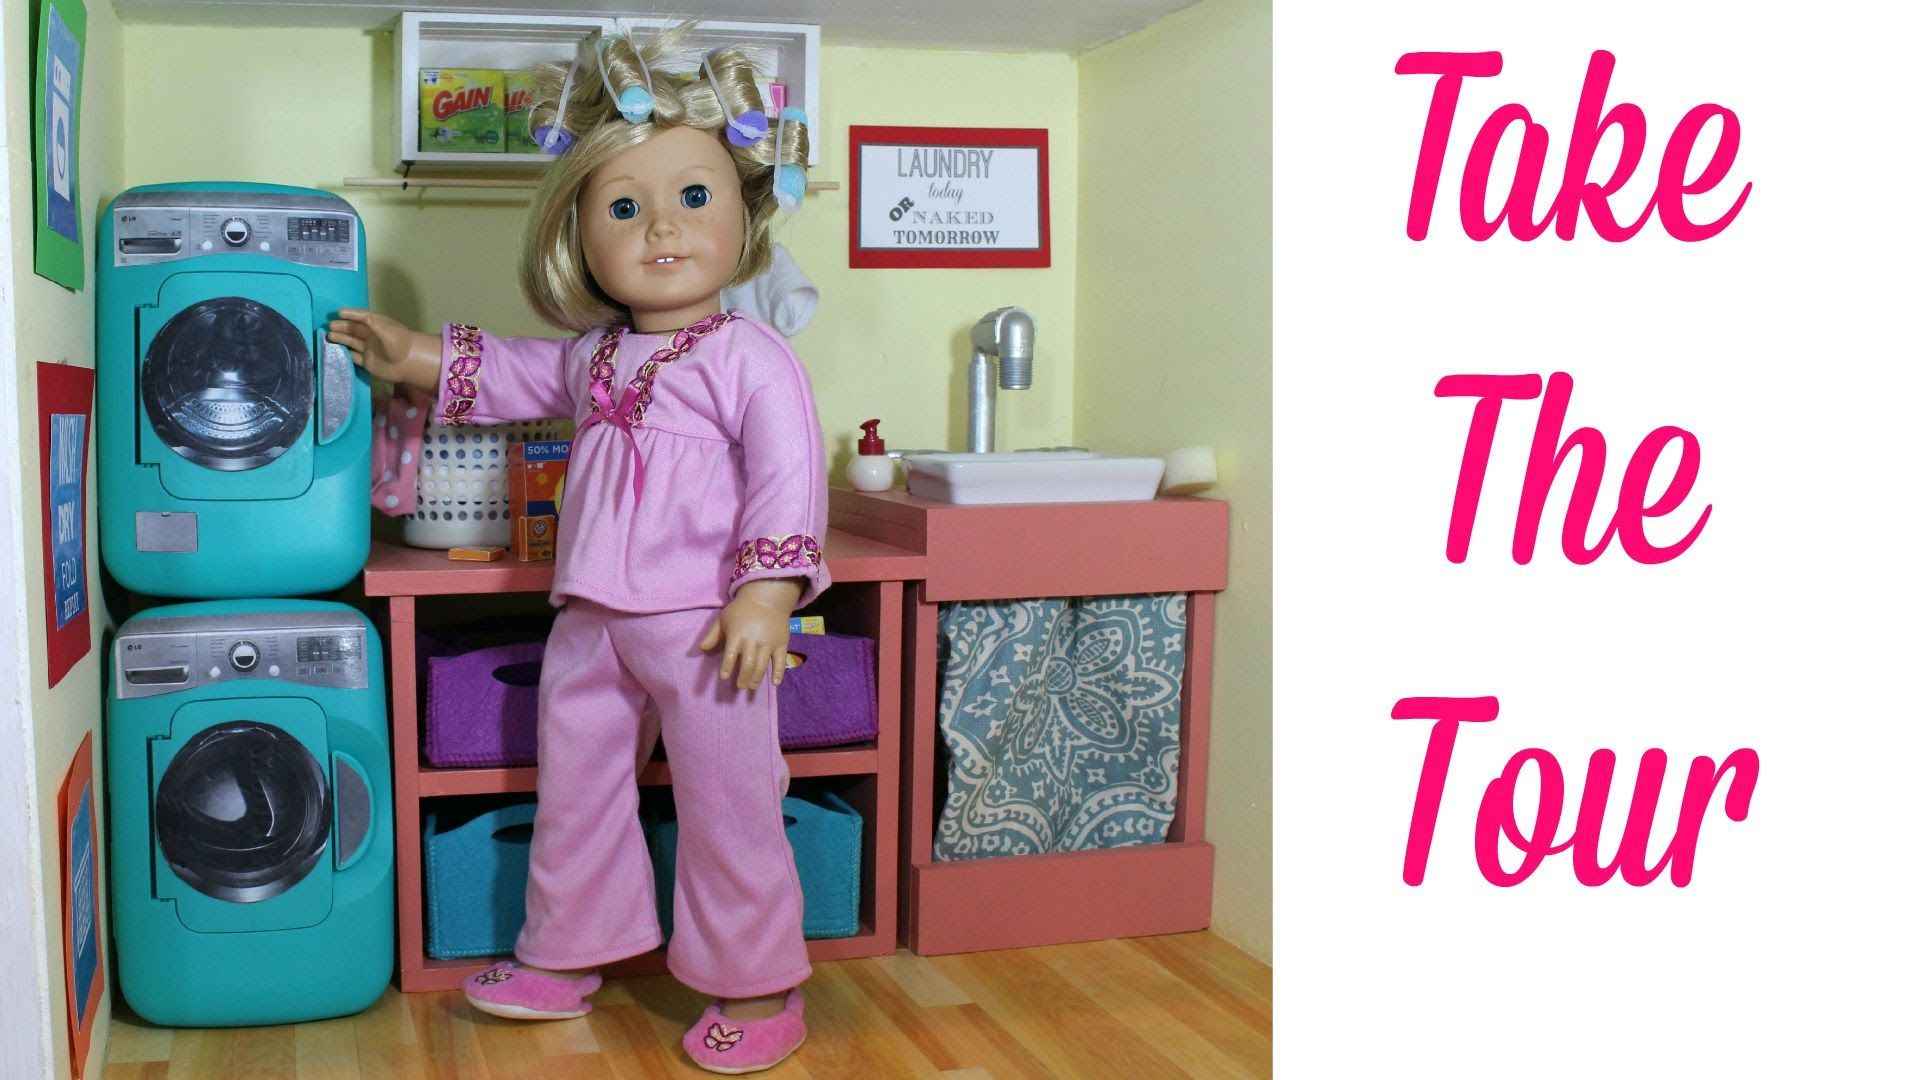 learn how to make american girl doll washing machine our doll washing machine is one of the easiest doll crafts we - How To Make A American Girl Room